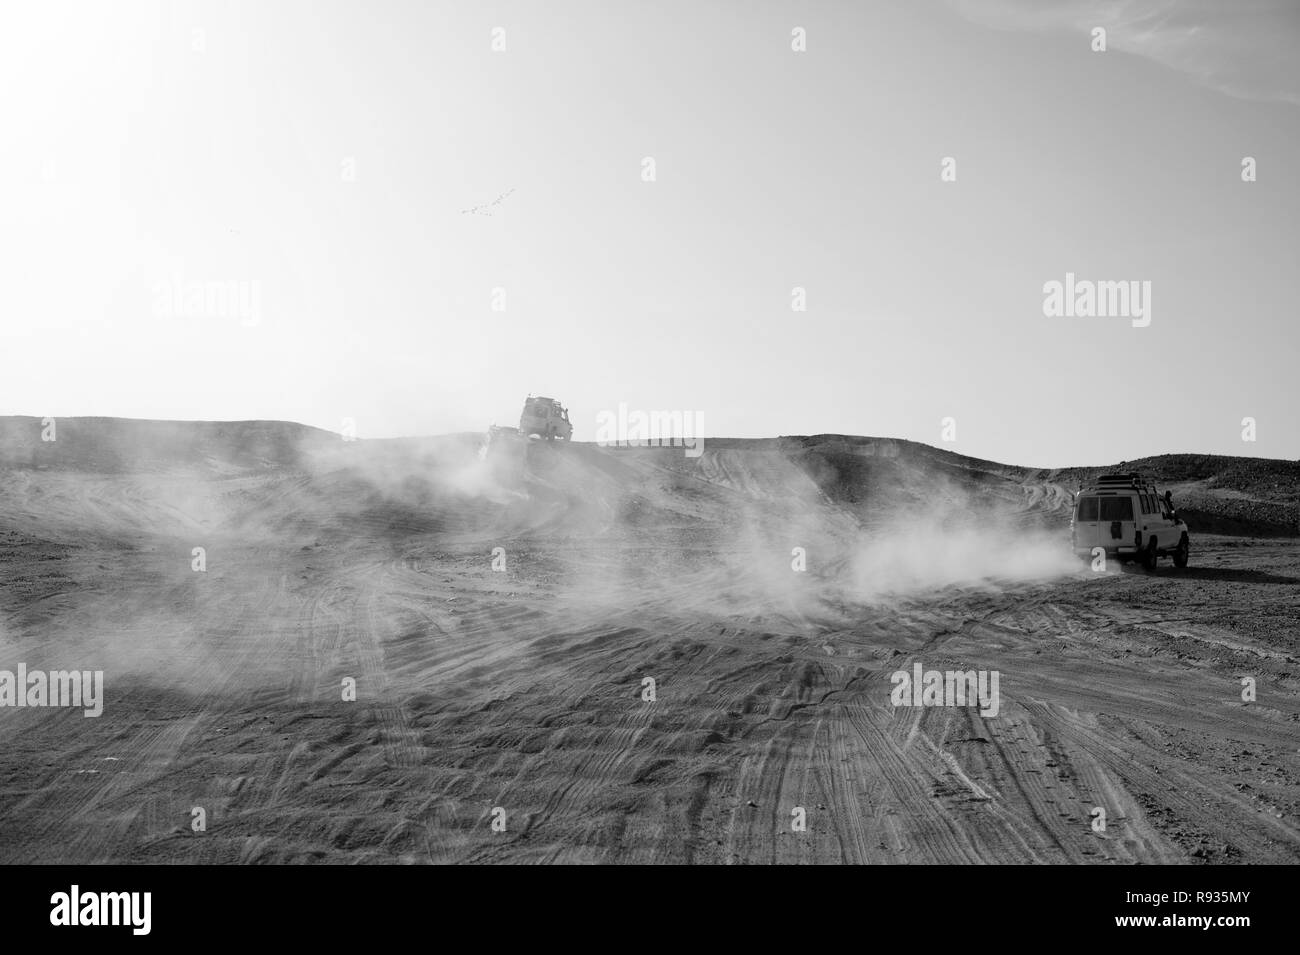 Competition racing challenge desert. Car overcome sand dunes obstacles. Car drives offroad with clouds of dust. Offroad vehicle racing obstacles in wilderness. Endless wilderness. Race in sand desert. - Stock Image